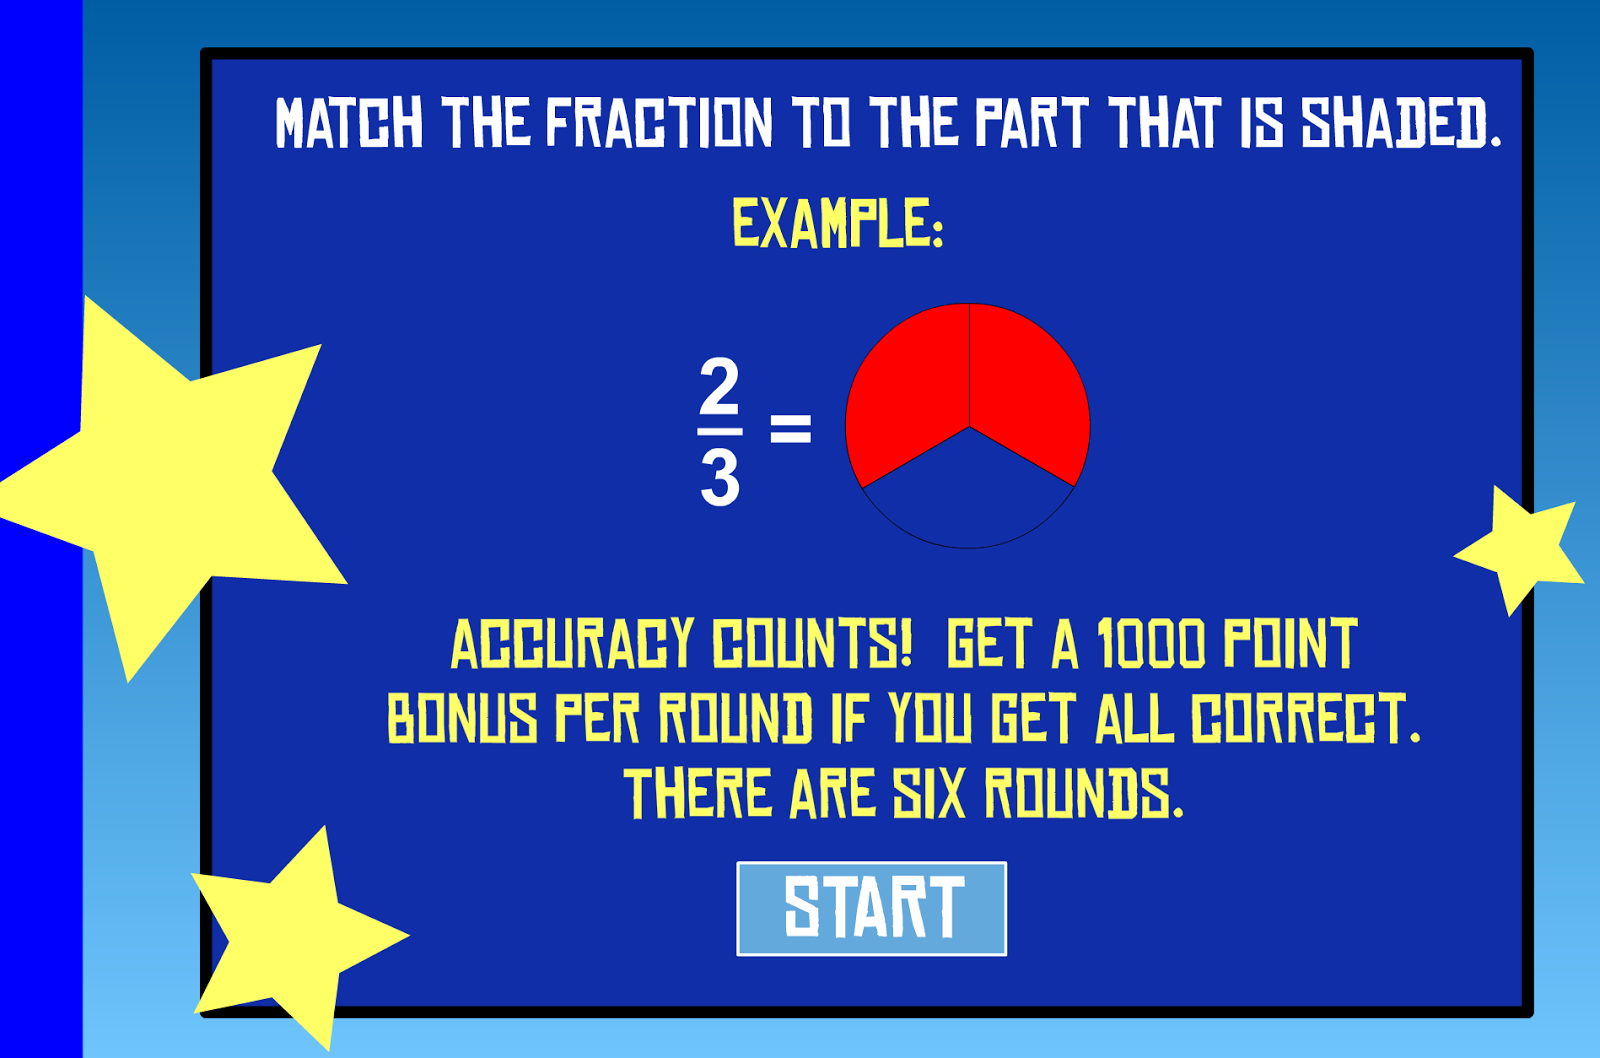 http://www.sheppardsoftware.com/mathgames/fractions/memory_fractions2.swf